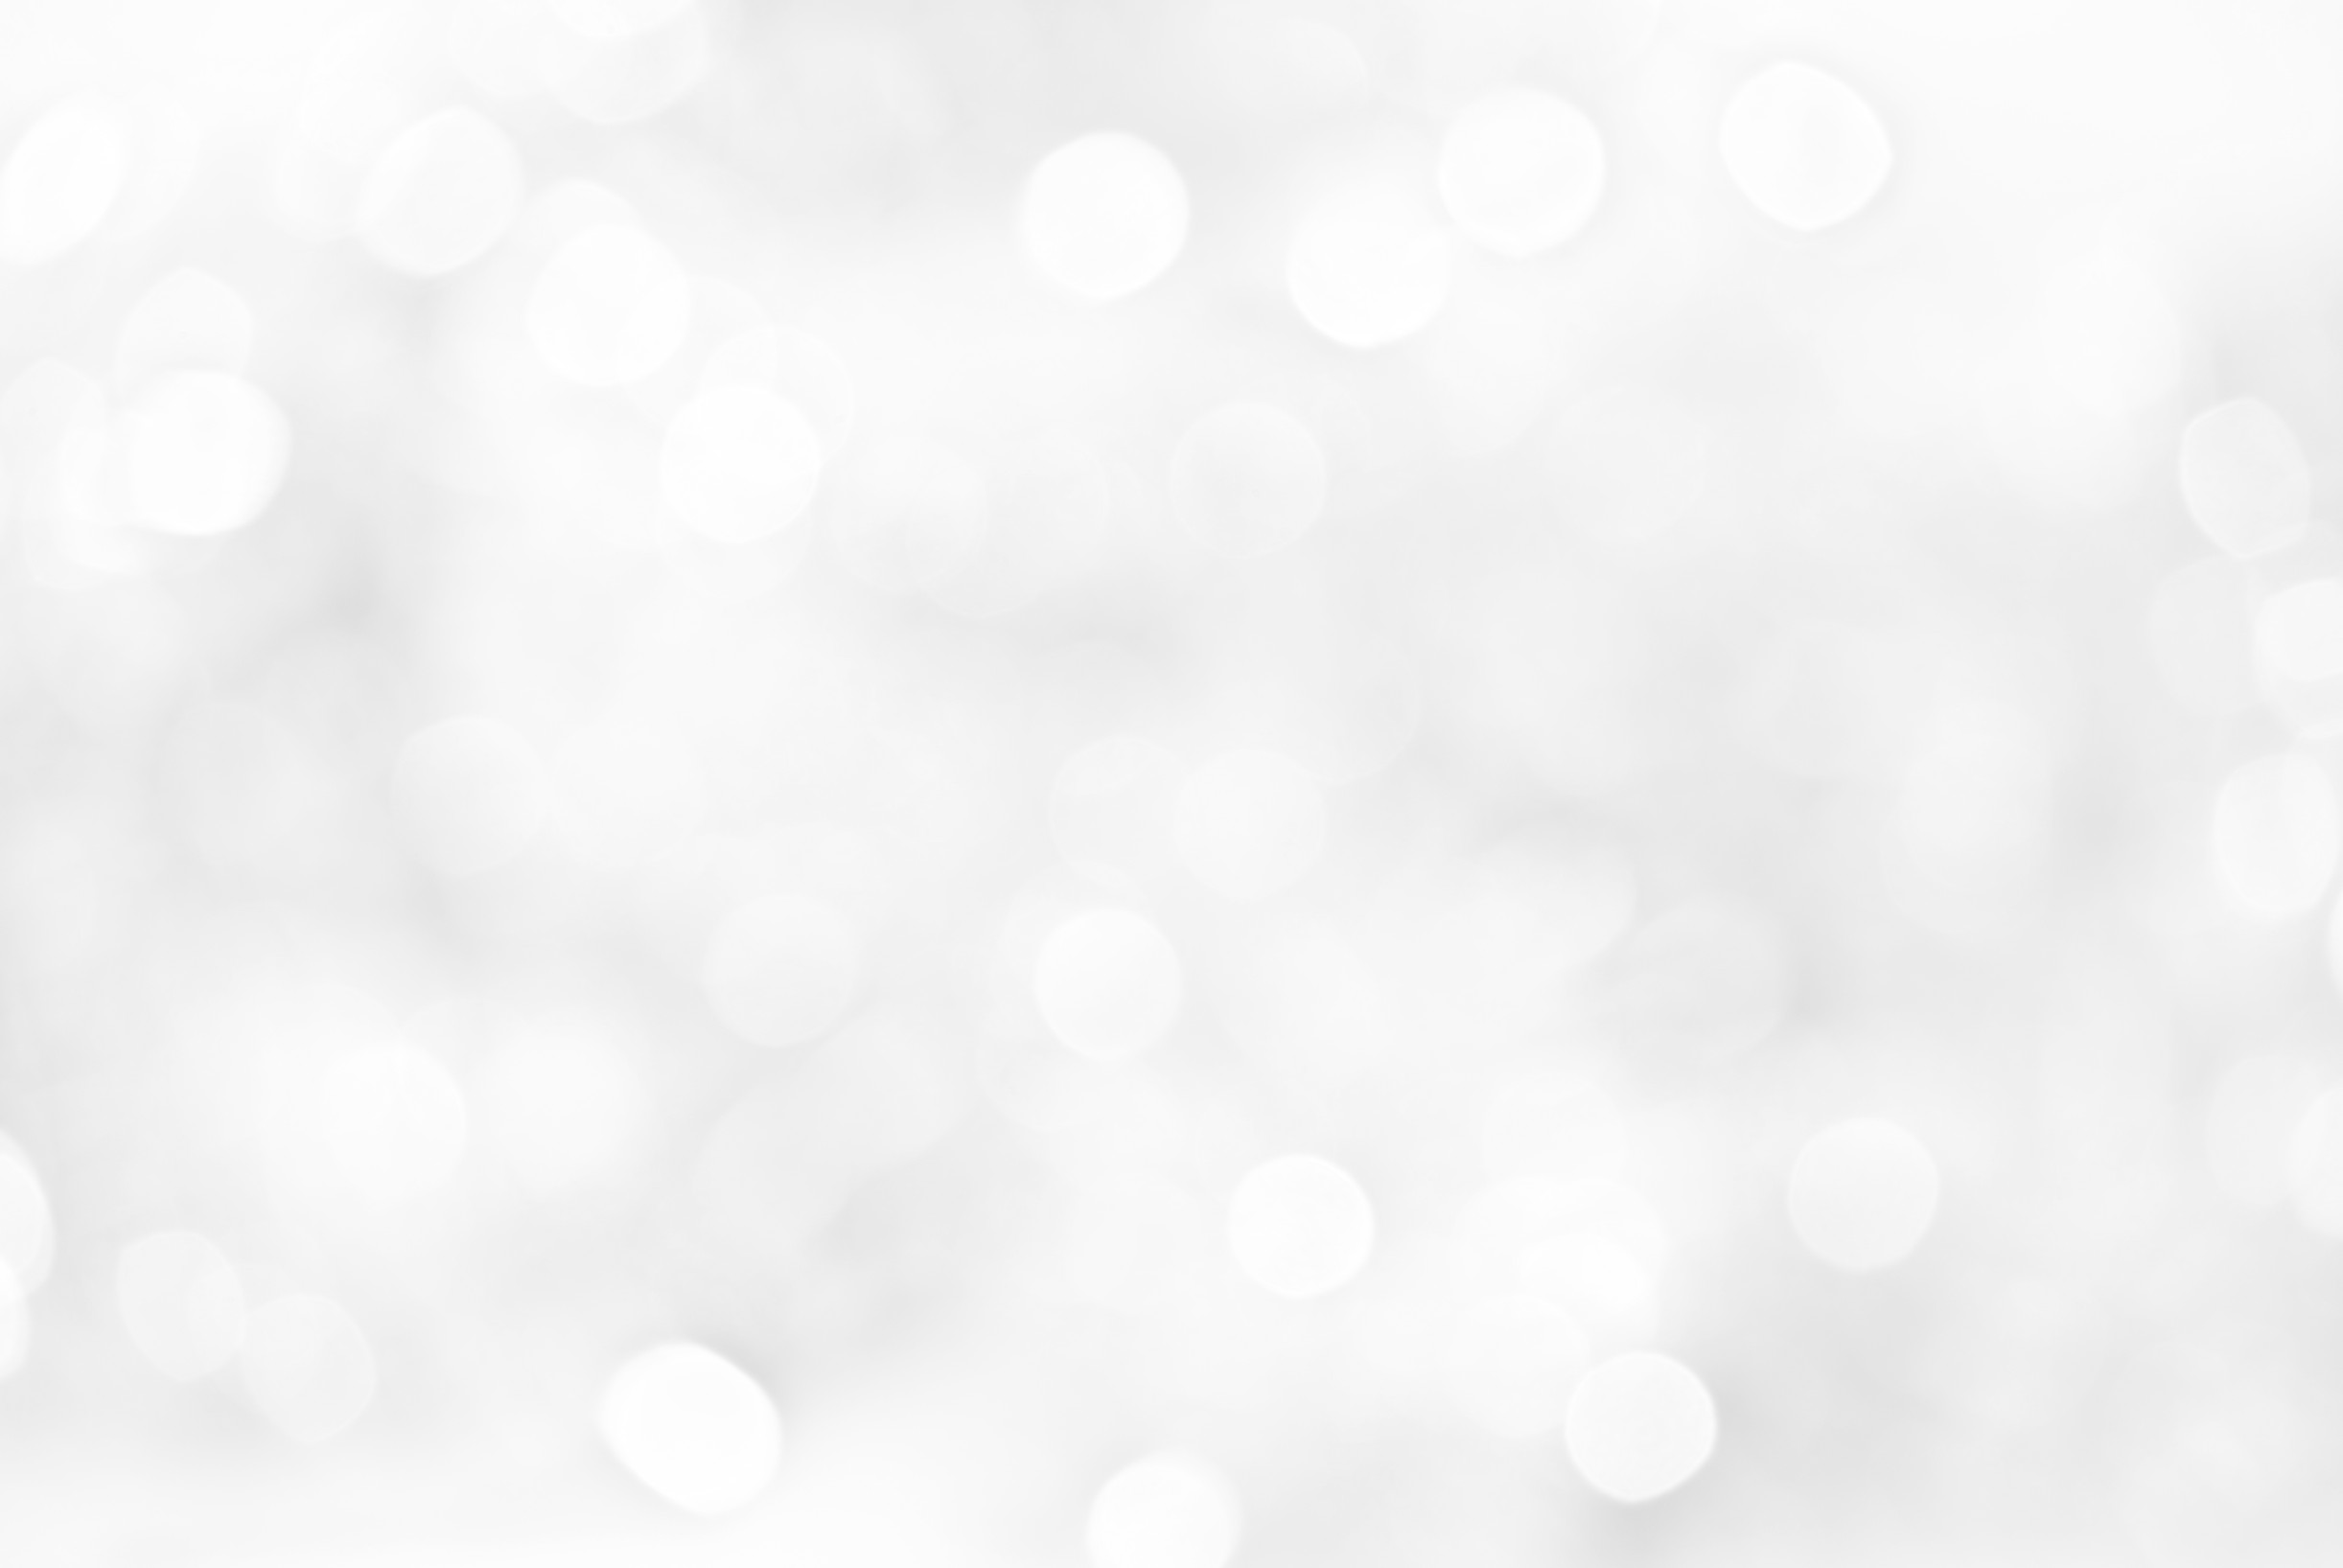 White Background Png (100+ images in Collection) Page 2.